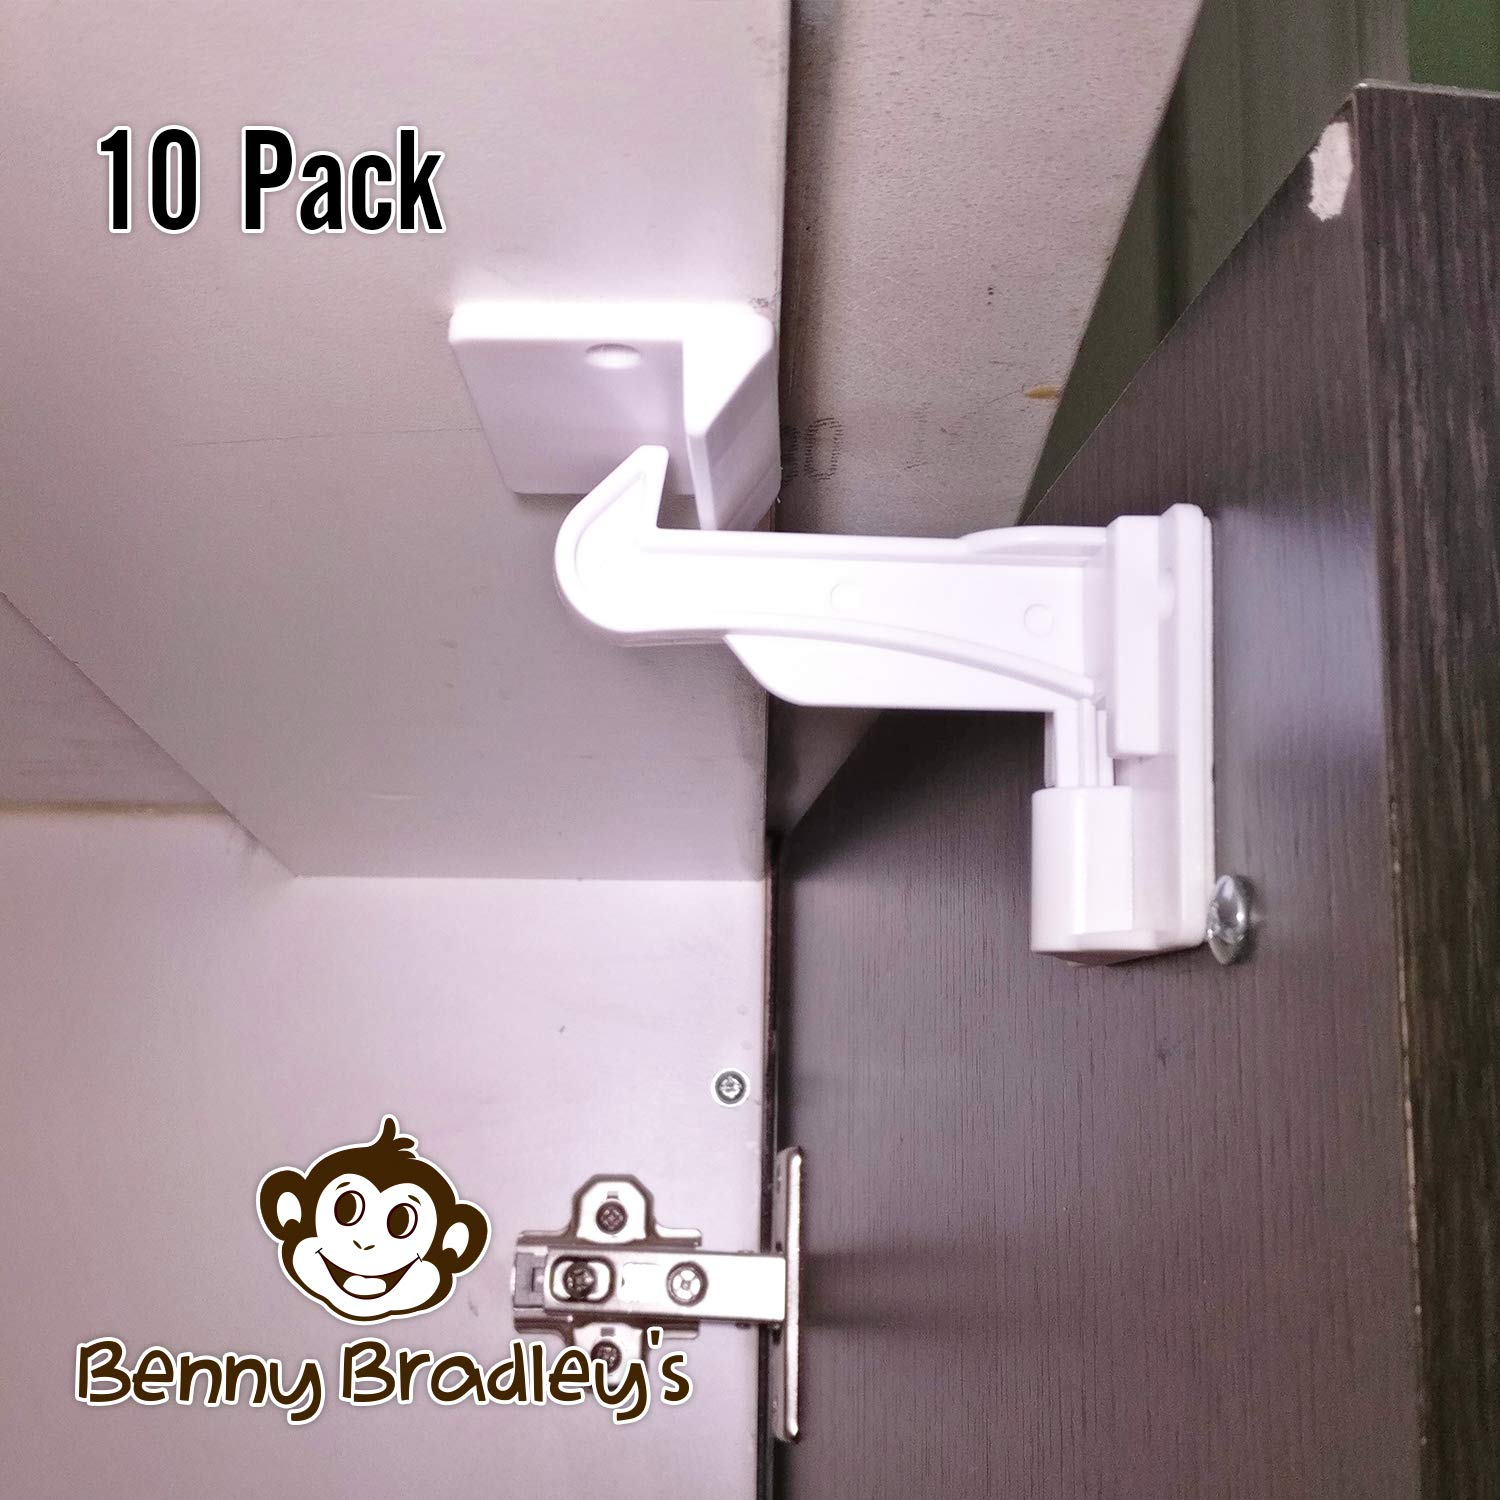 UPGRADED Invisible Baby Proofing Cabinet Latch Locks (10 Pack) - No Drilling or Tools Required for Installation, Universal for All Cabinets and Drawers, Works with Countertop Overhangs, Highly Secure - (WHITE) Benny Bradley's